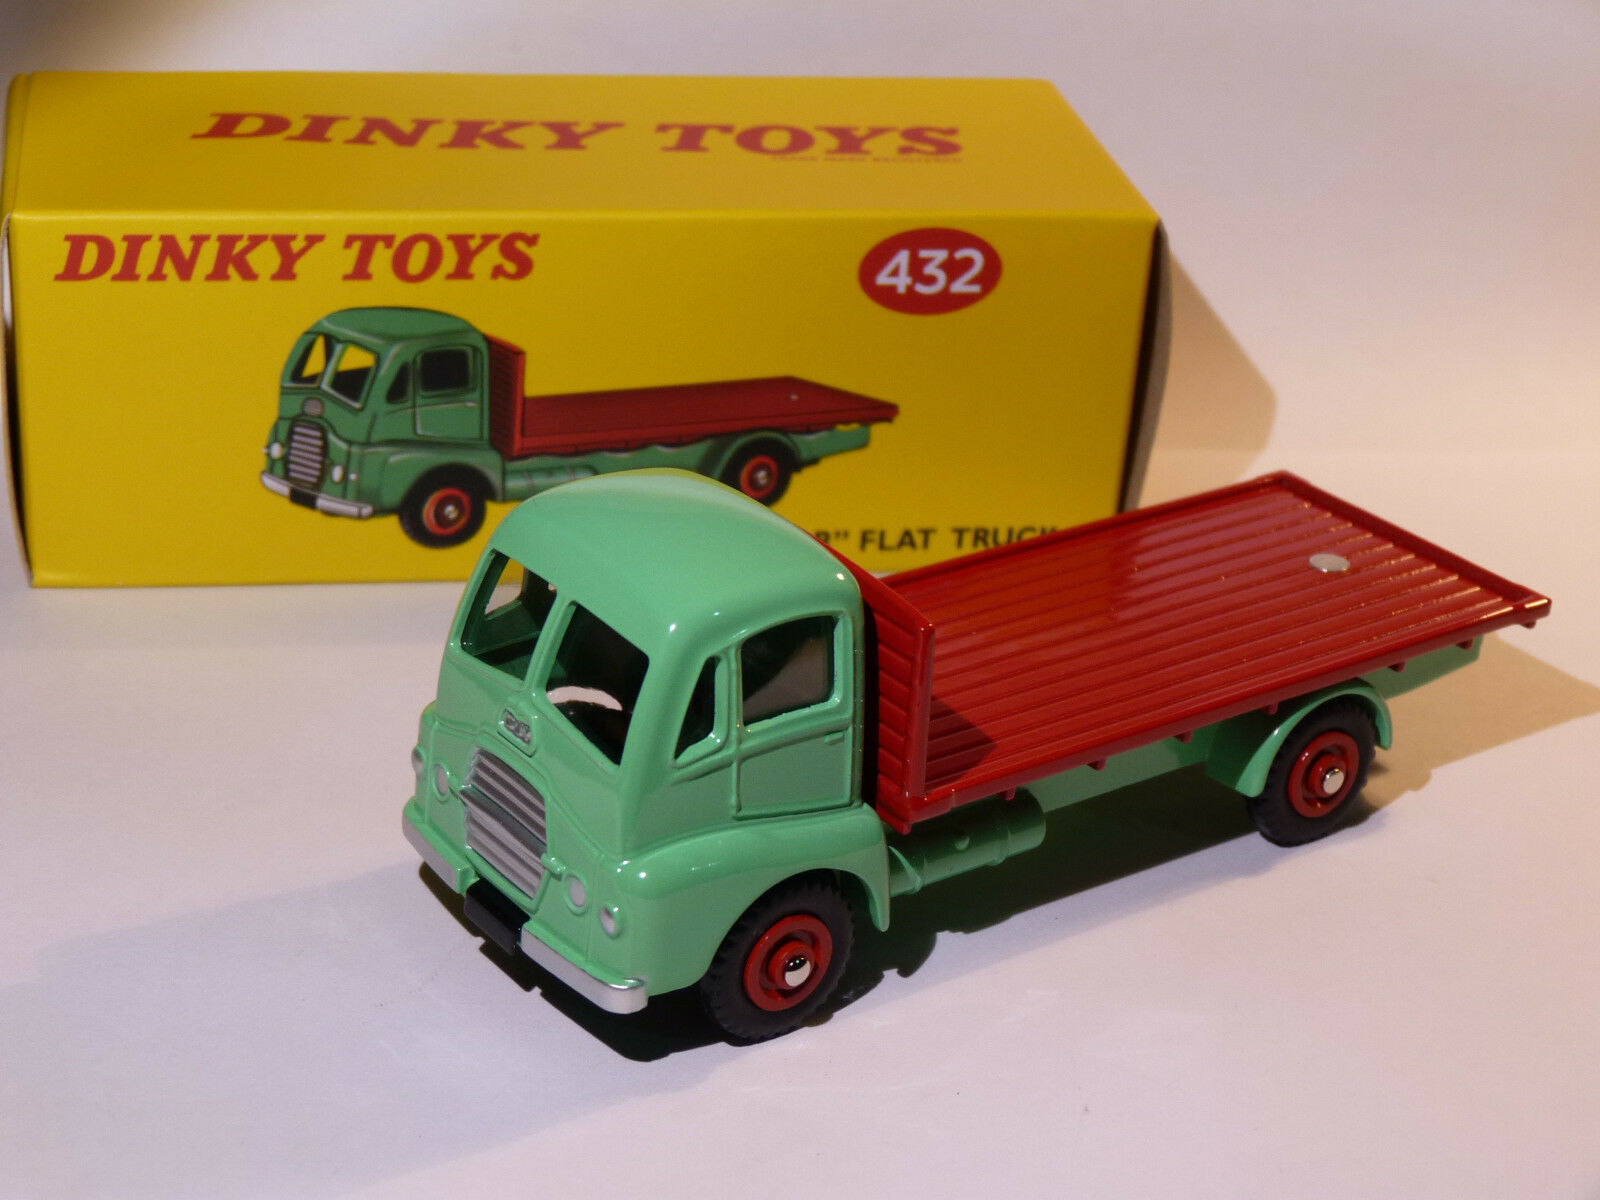 Camion GUY Warrior plateau - ref 432 de dinky toys atlas